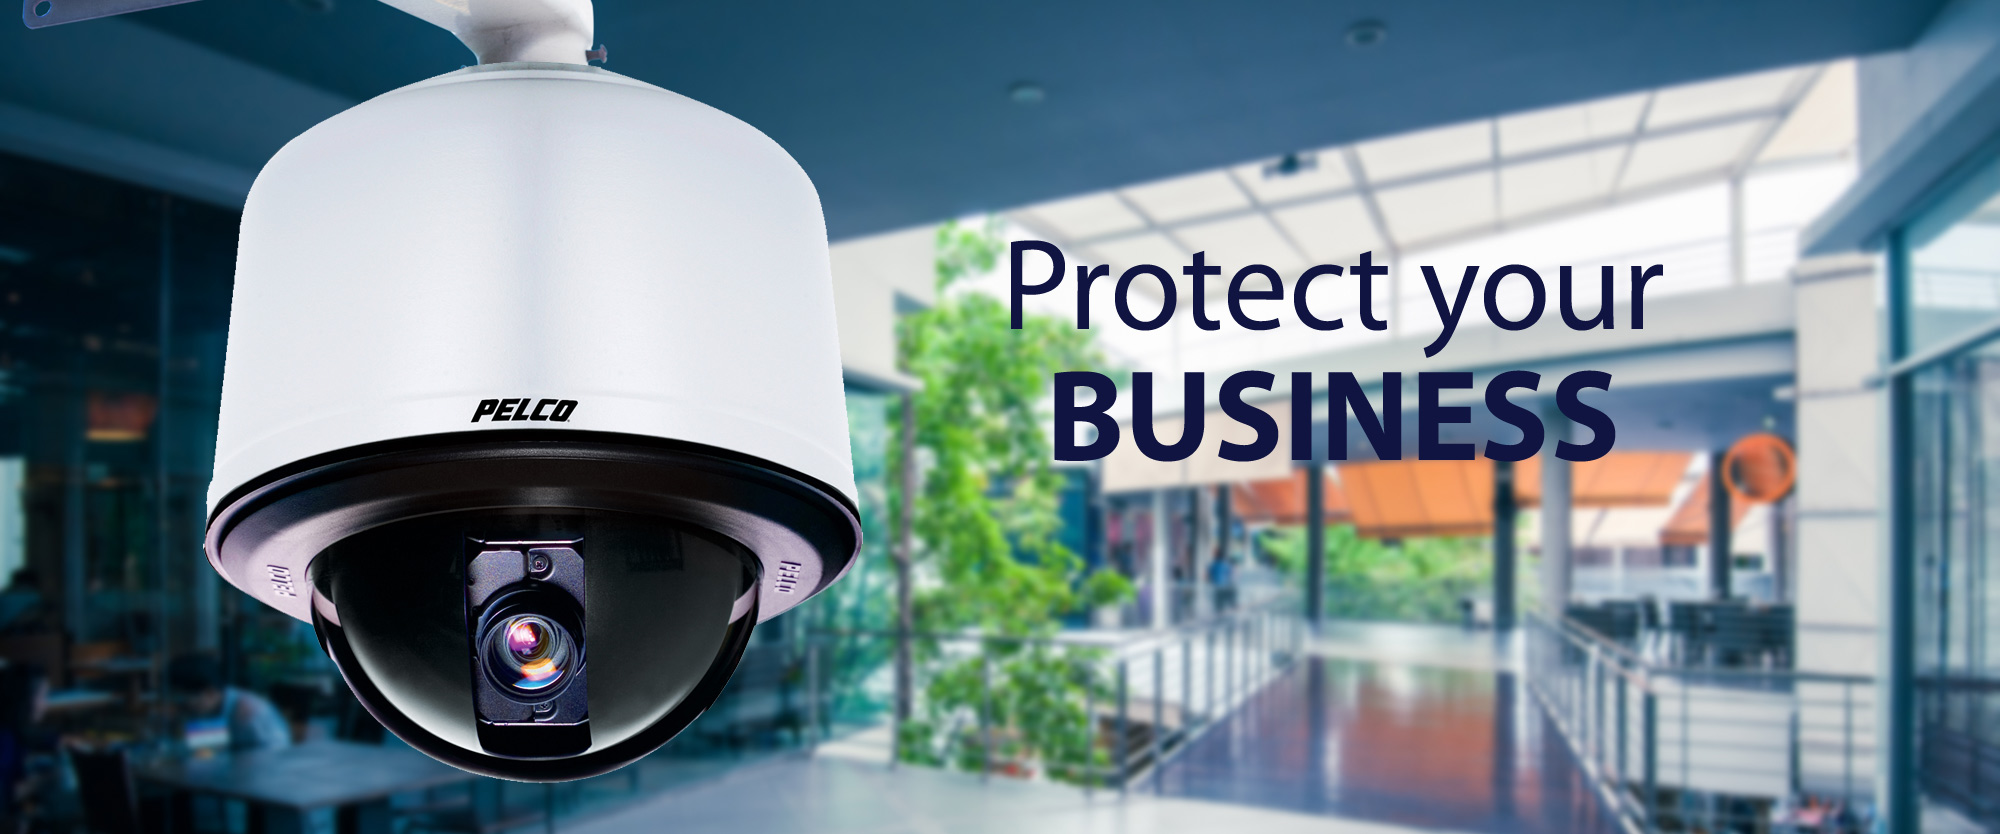 Commercial Security/Fire/Access Control/CCTV